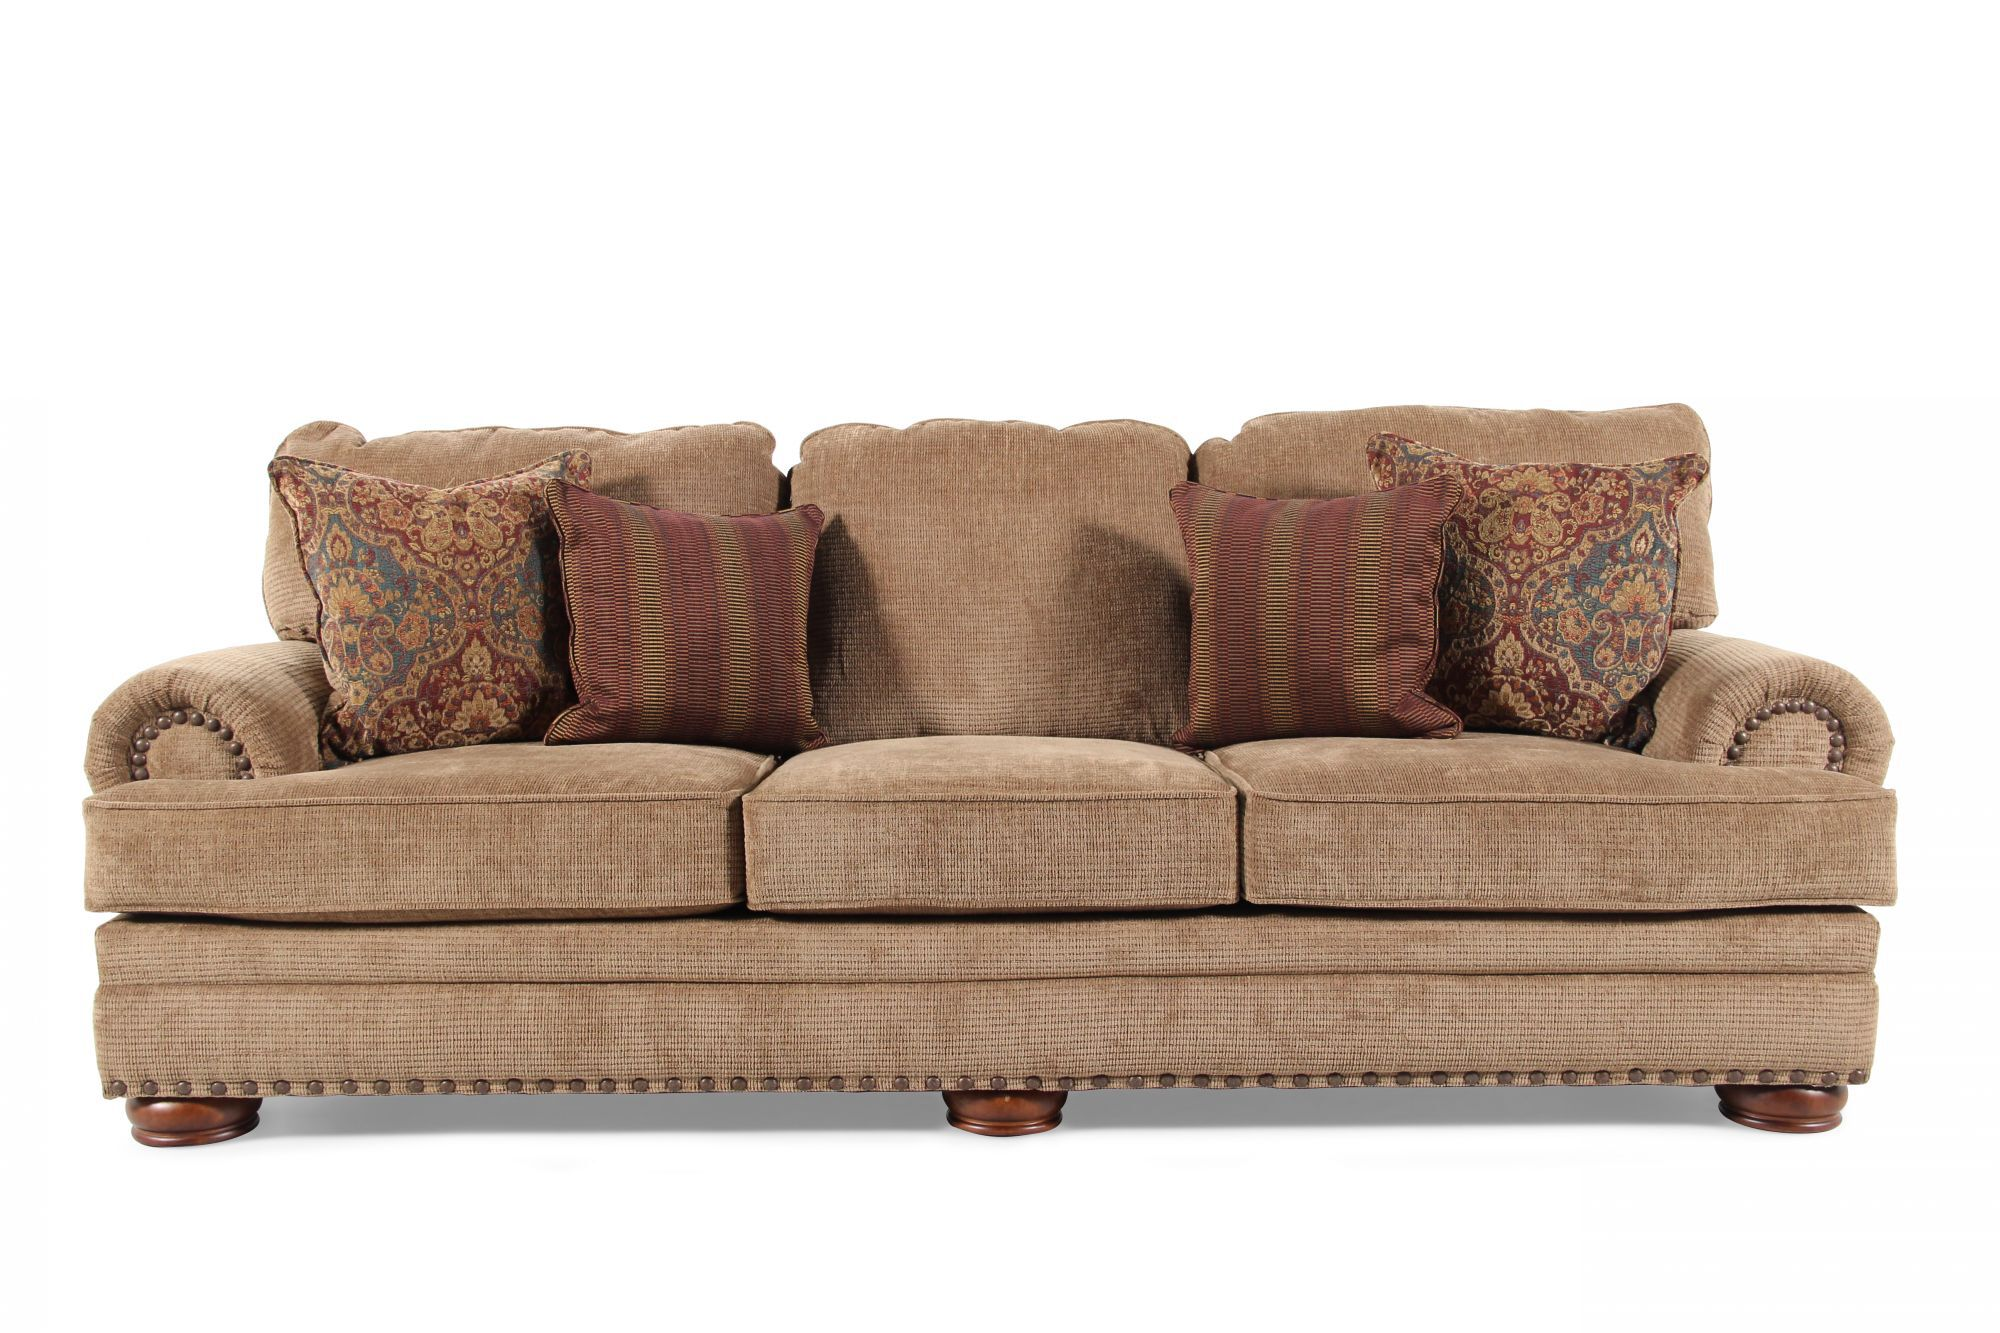 lane cooper sofa restoration hardware maxwell sleeper review desert | mathis brothers furniture